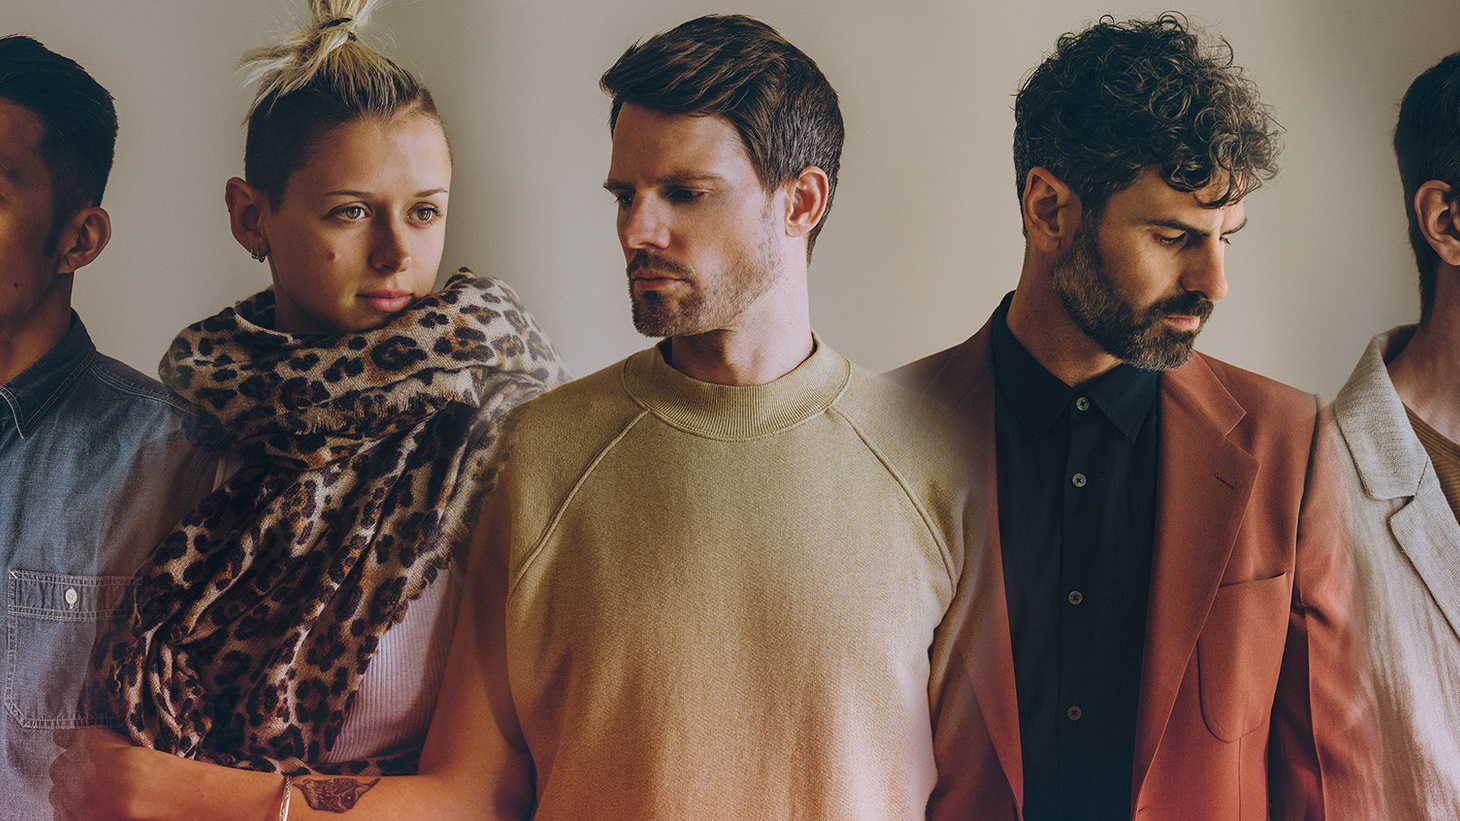 """Scott Hansen aka Tycho says this of his new track: """"I was thinking a lot about the kinds of electronic music instruments I had been using when I first started making music in the late '90s.With """"Japan,"""" I was trying to recapture a part of that…"""